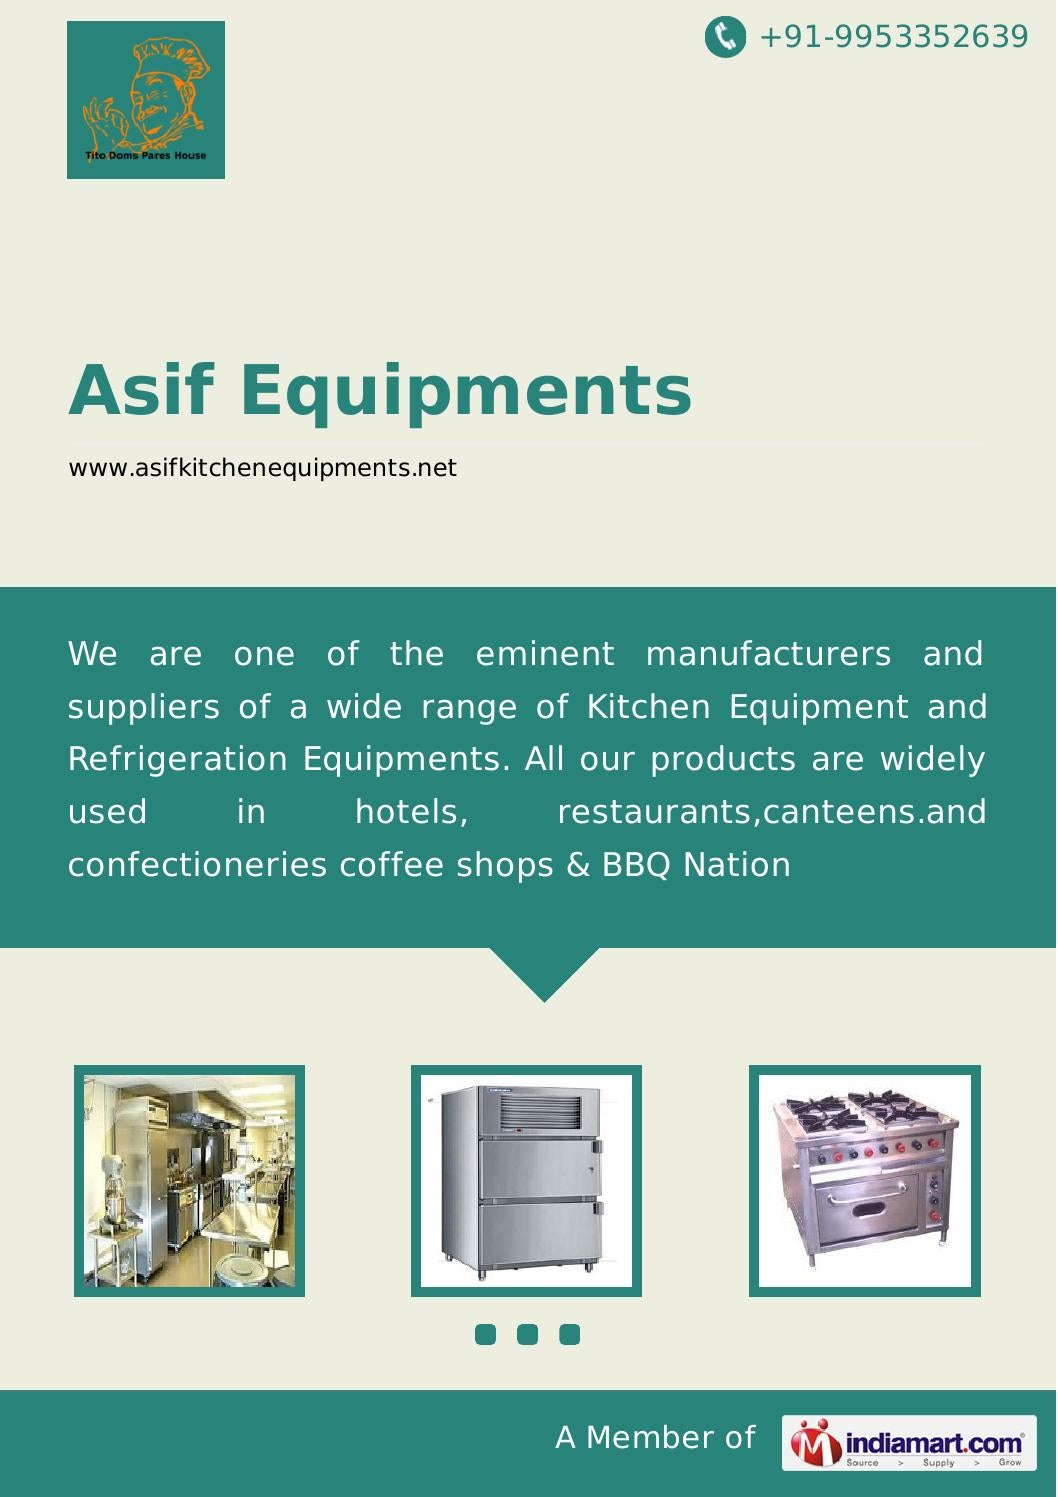 Kitchen Equipment by Asif equipments by Asif Equipments - issuu